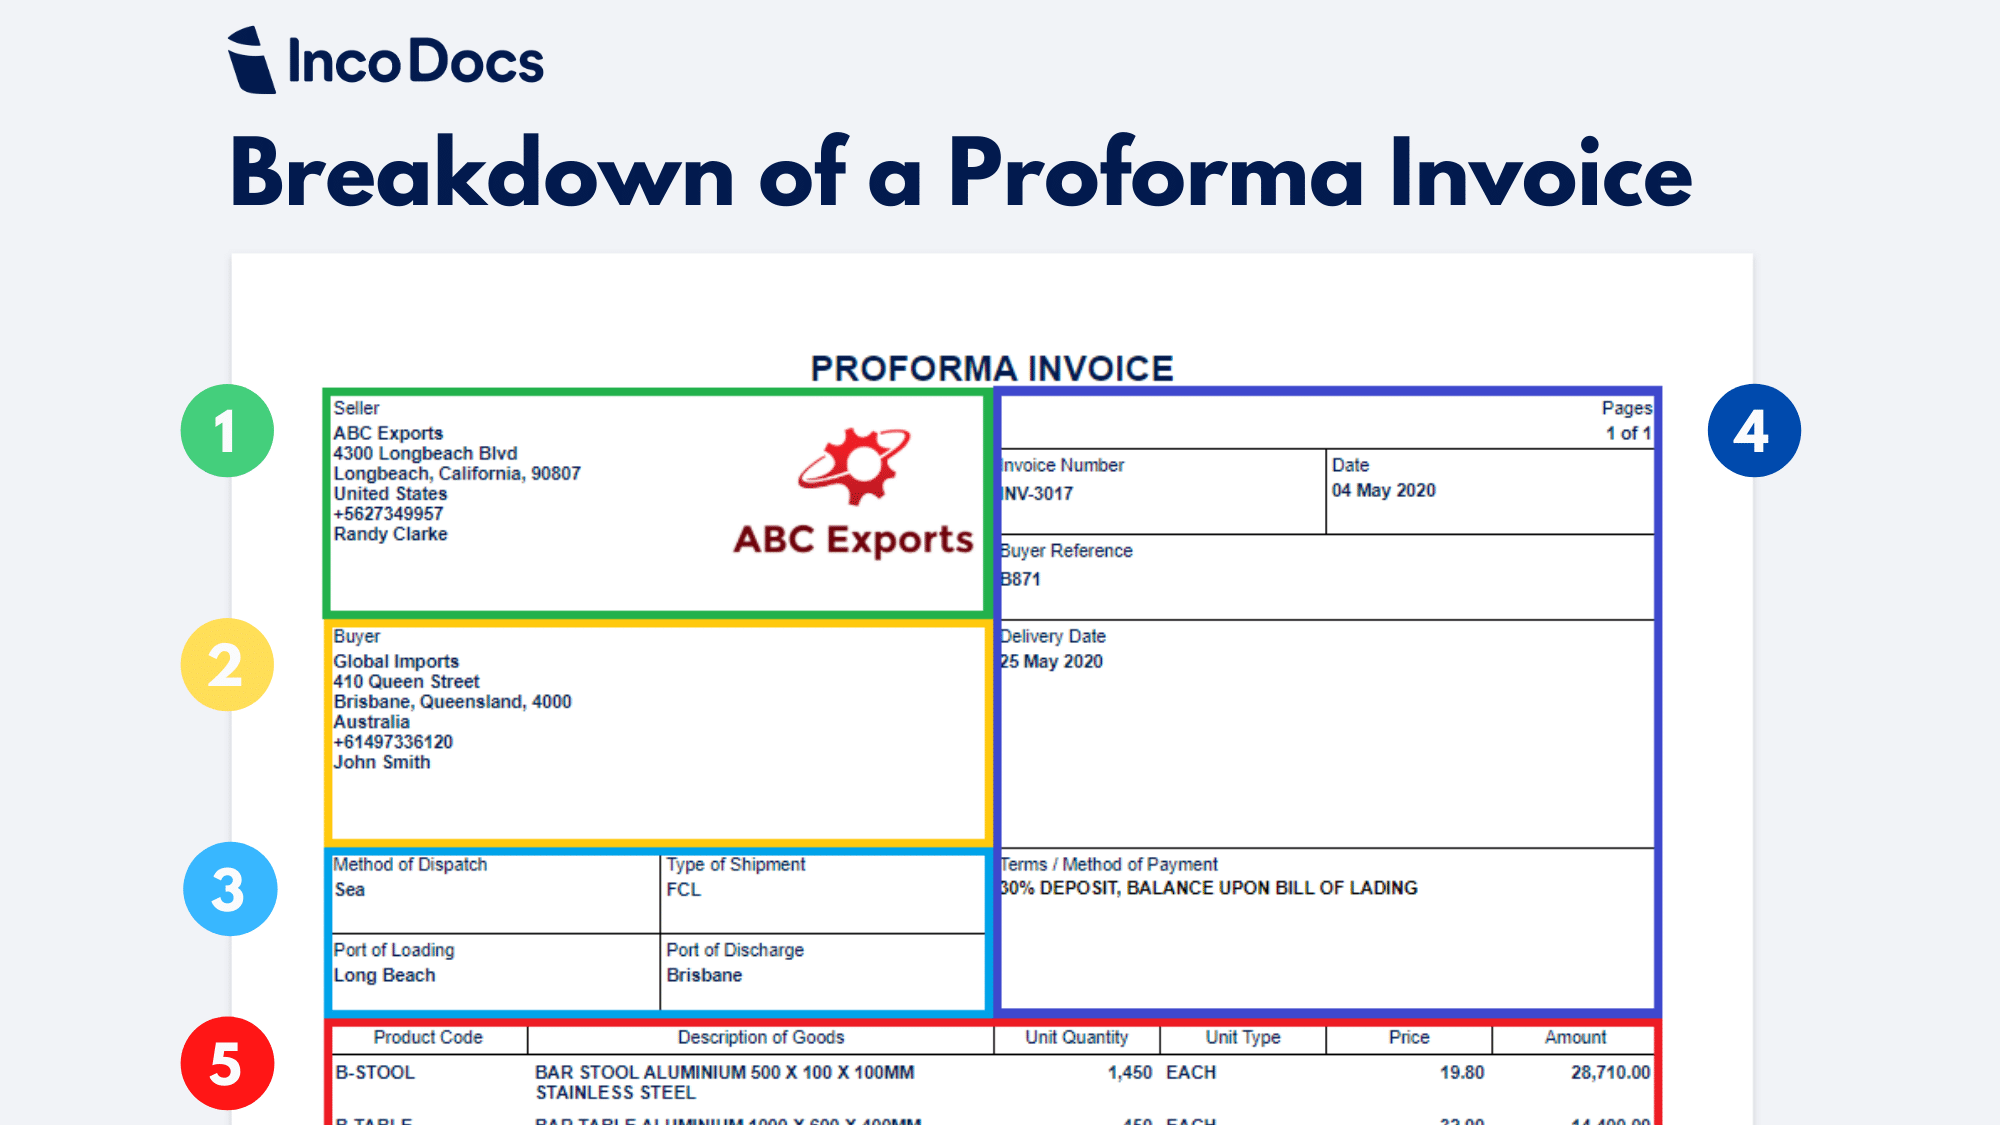 Guide Create And Download A Proforma Invoice Template For Global Trade Incodocs